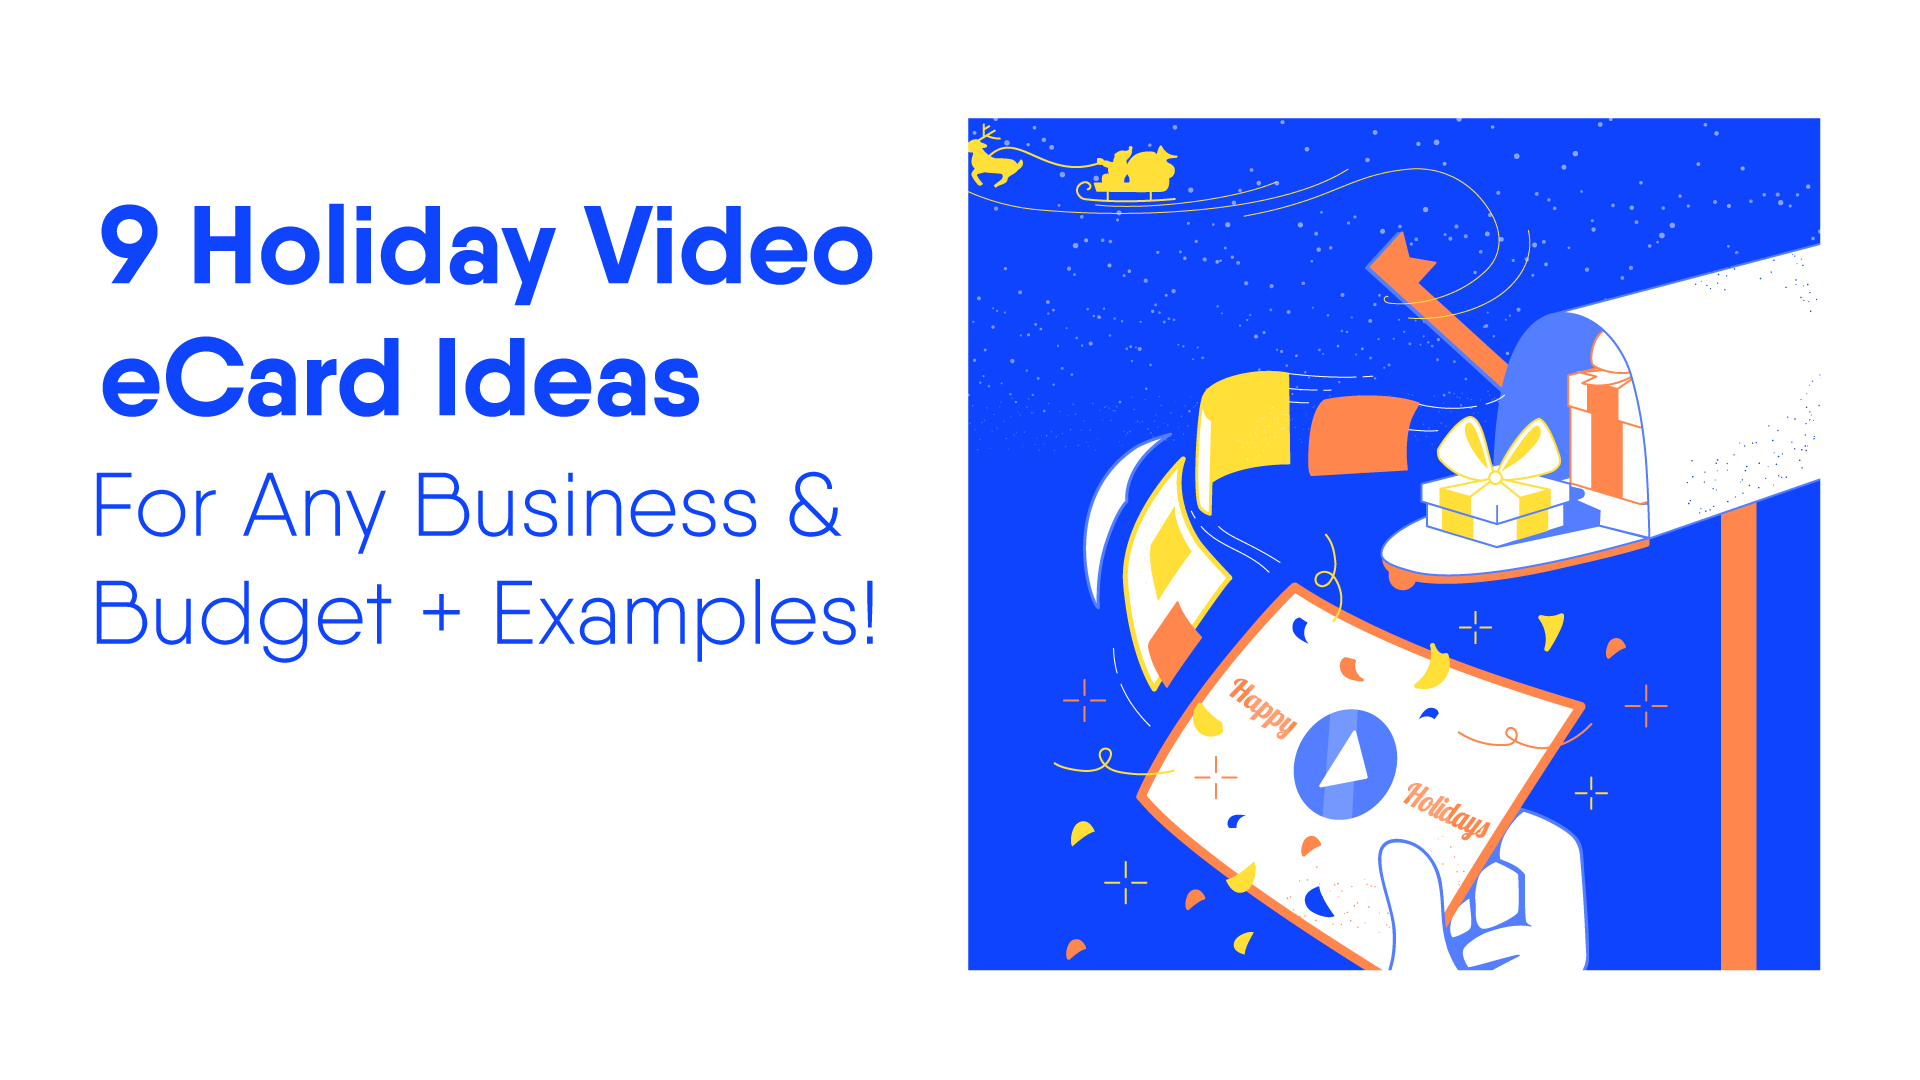 9 Tried Quick Holiday Video Ideas For Businesses Examples